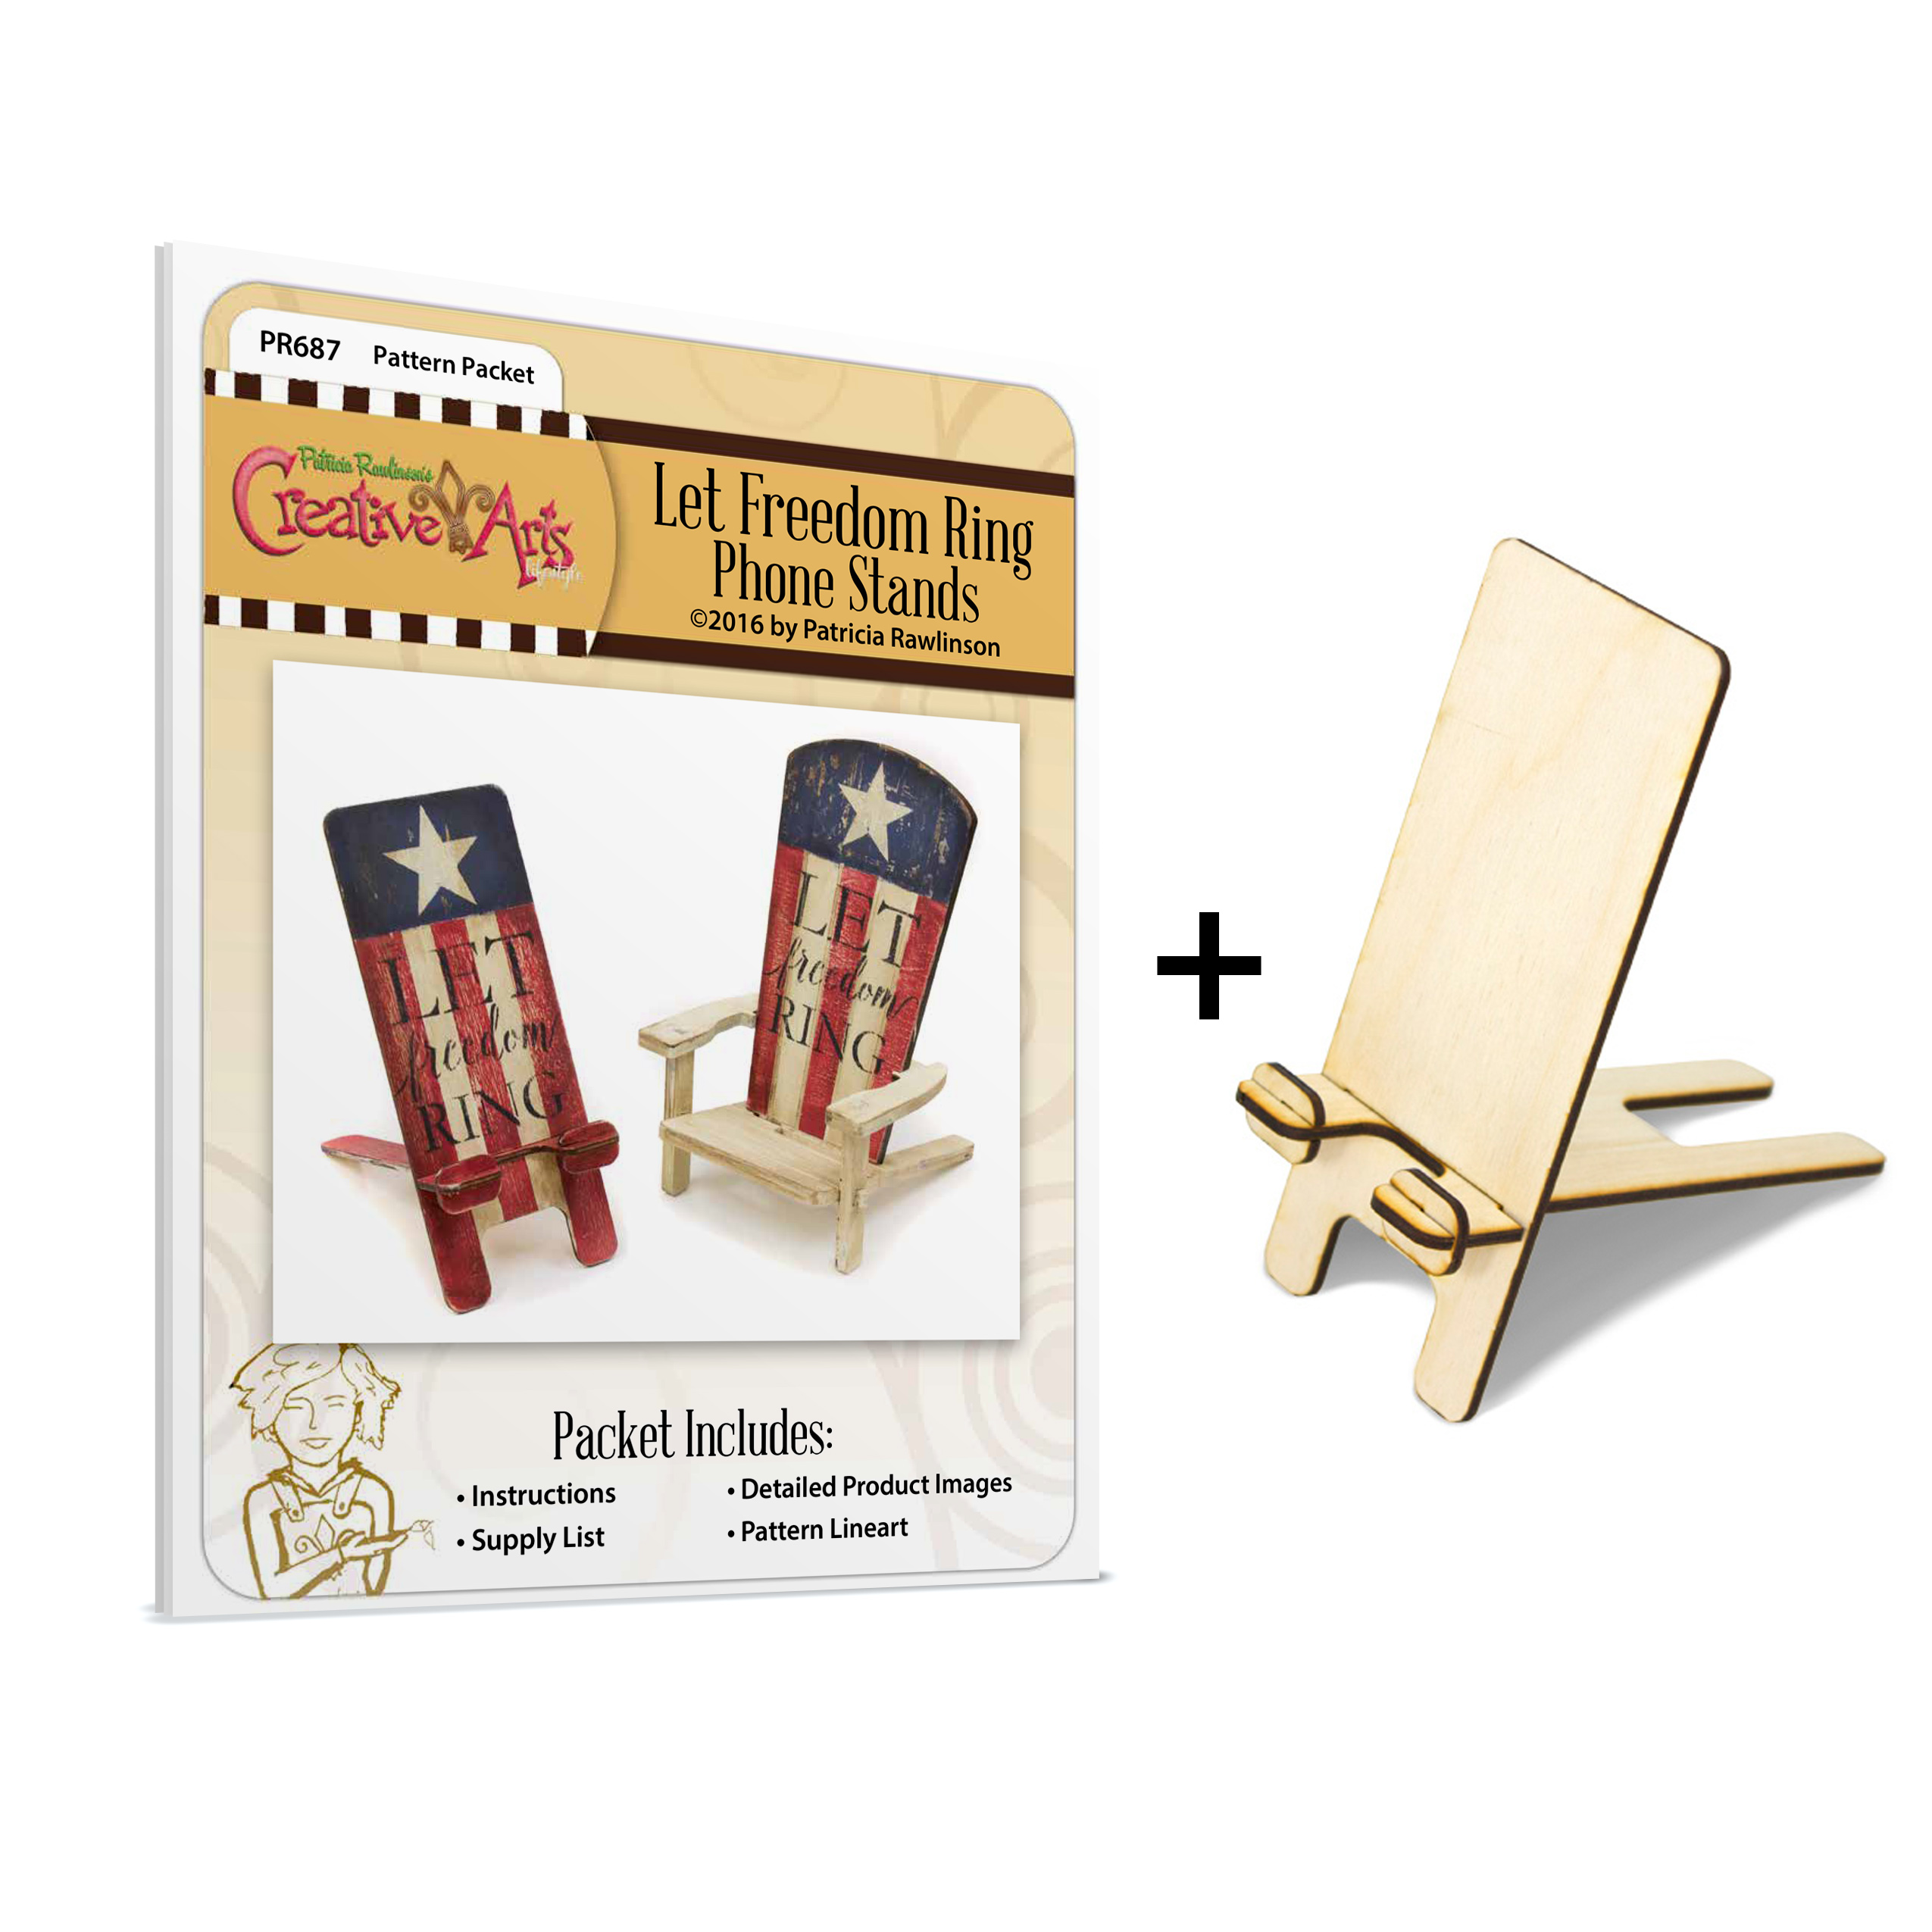 Let Freedom Ring Smartphone Stand Surface & Pattern Packet Project CMBN558